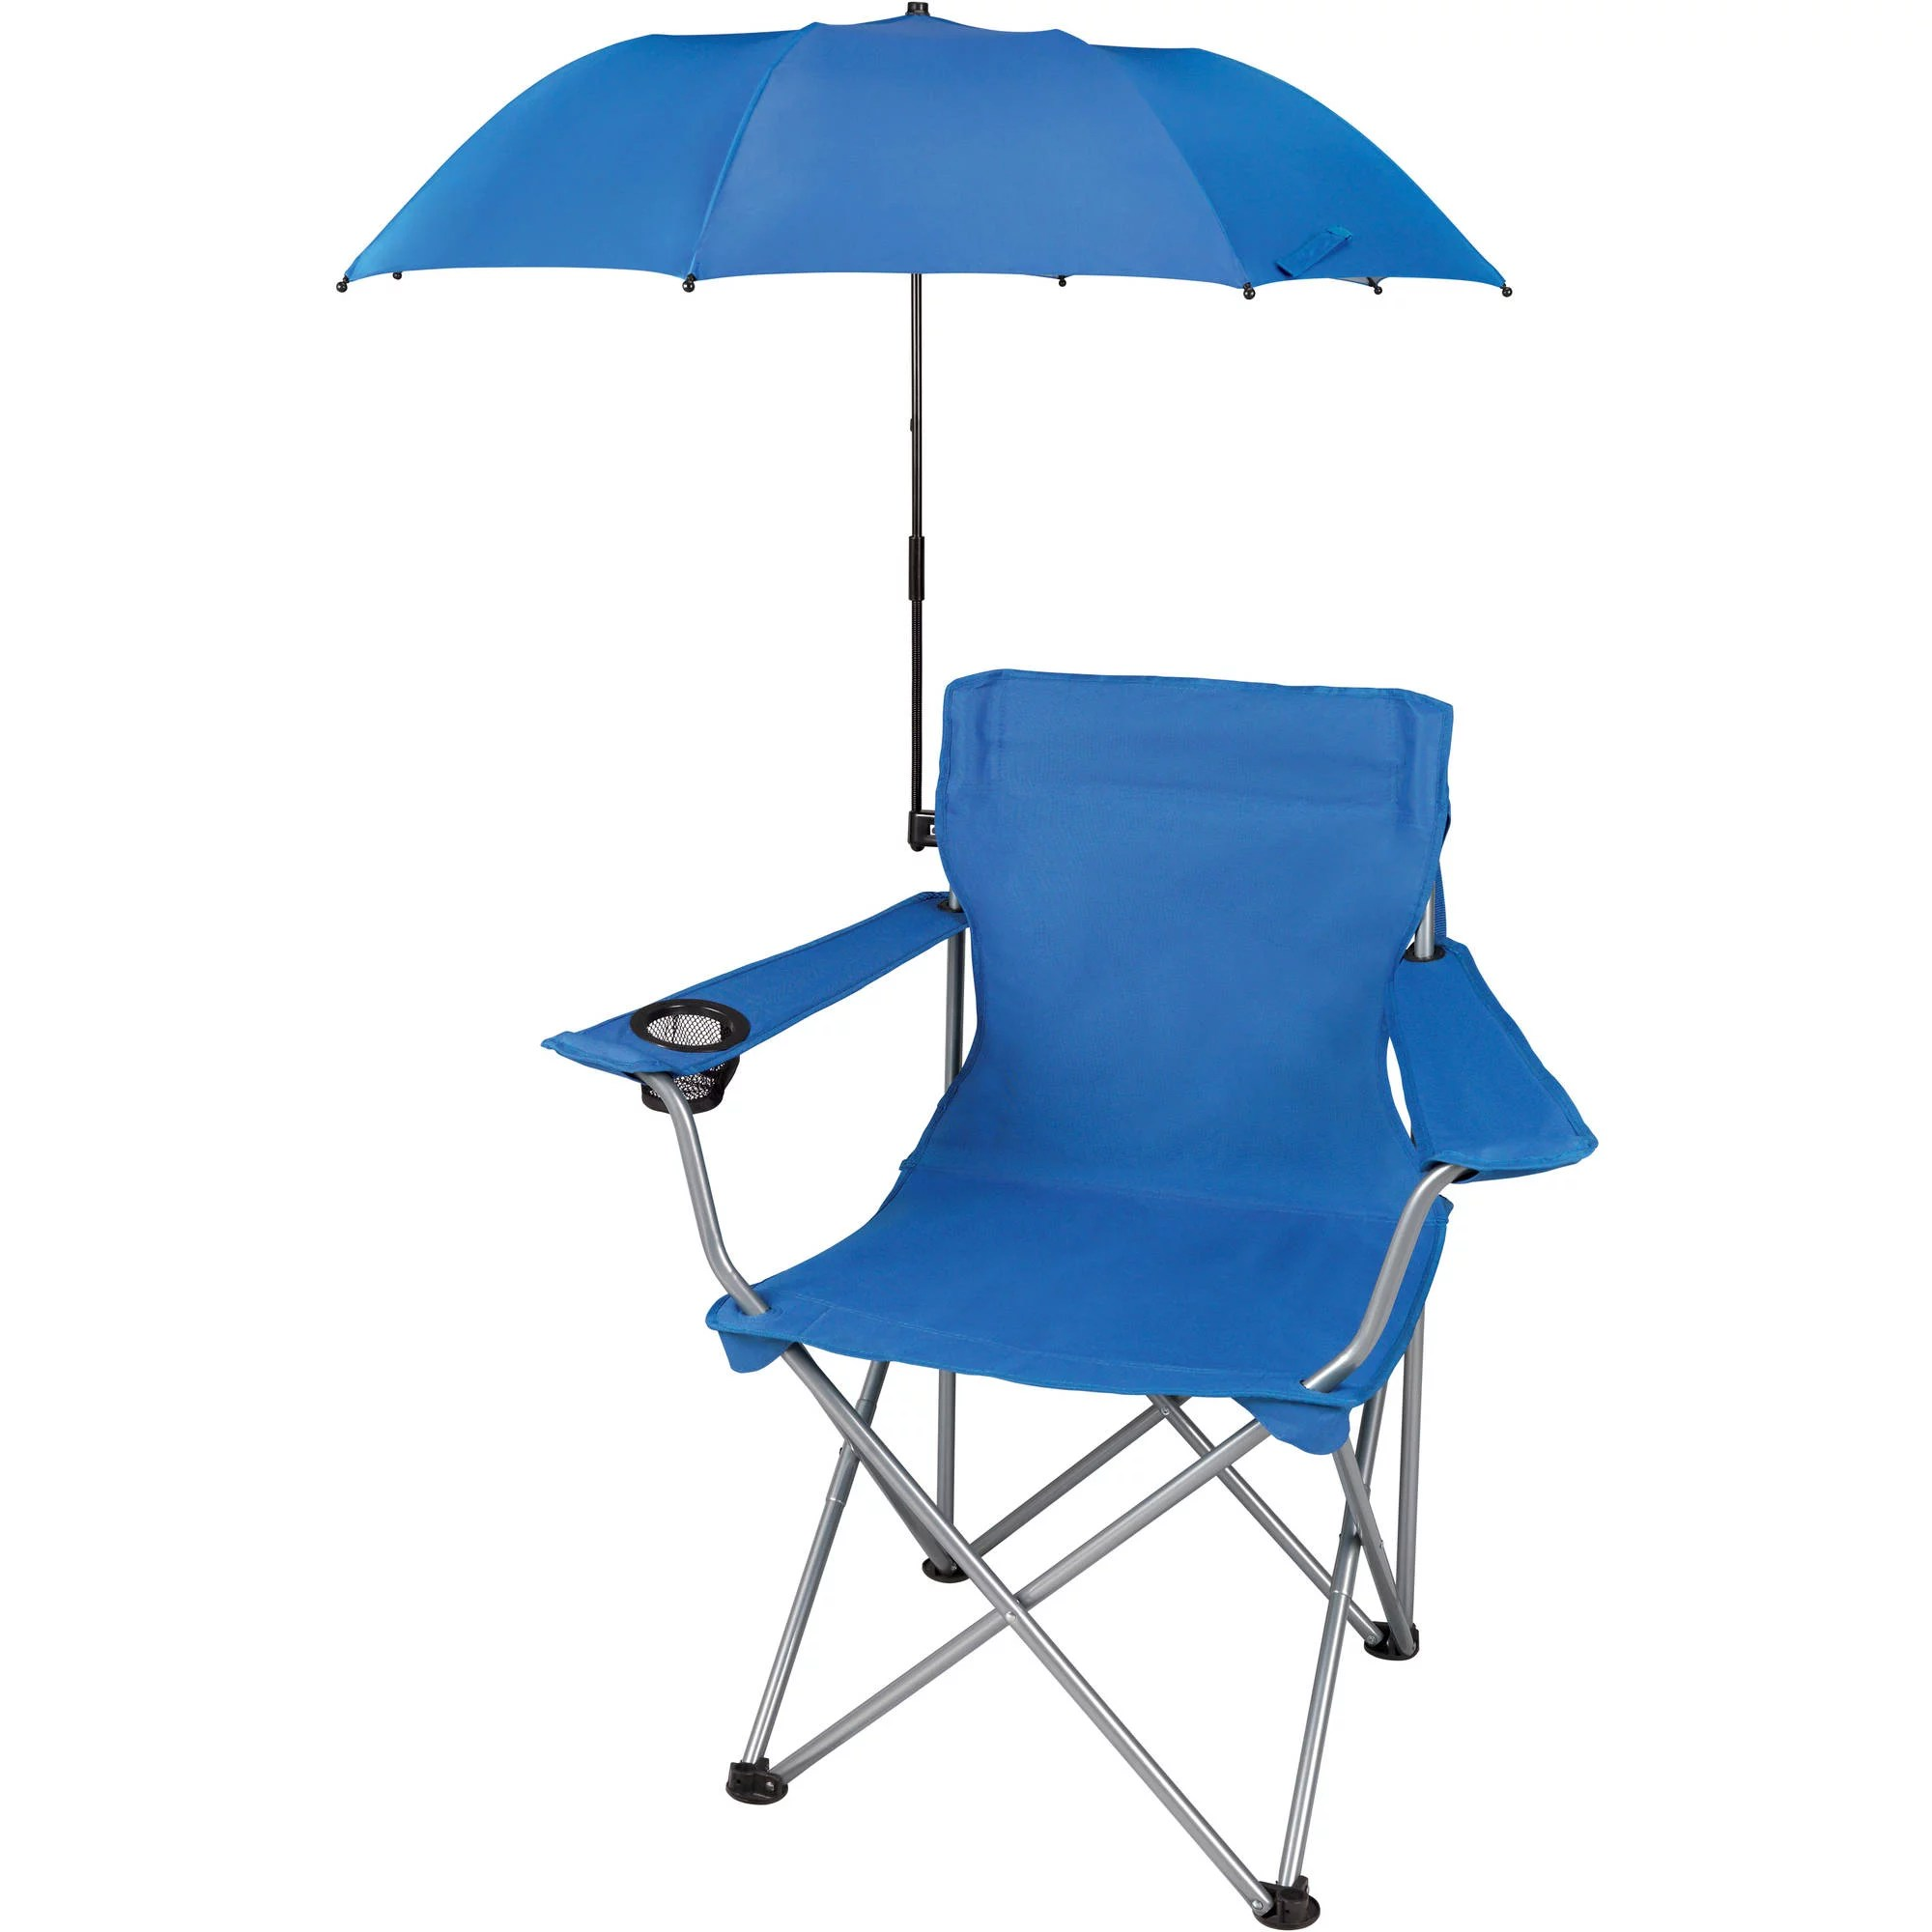 Beach Chairs With Umbrella Ozark Trail Outdoor Chair Umbrella Attachment Chair Sold Separately